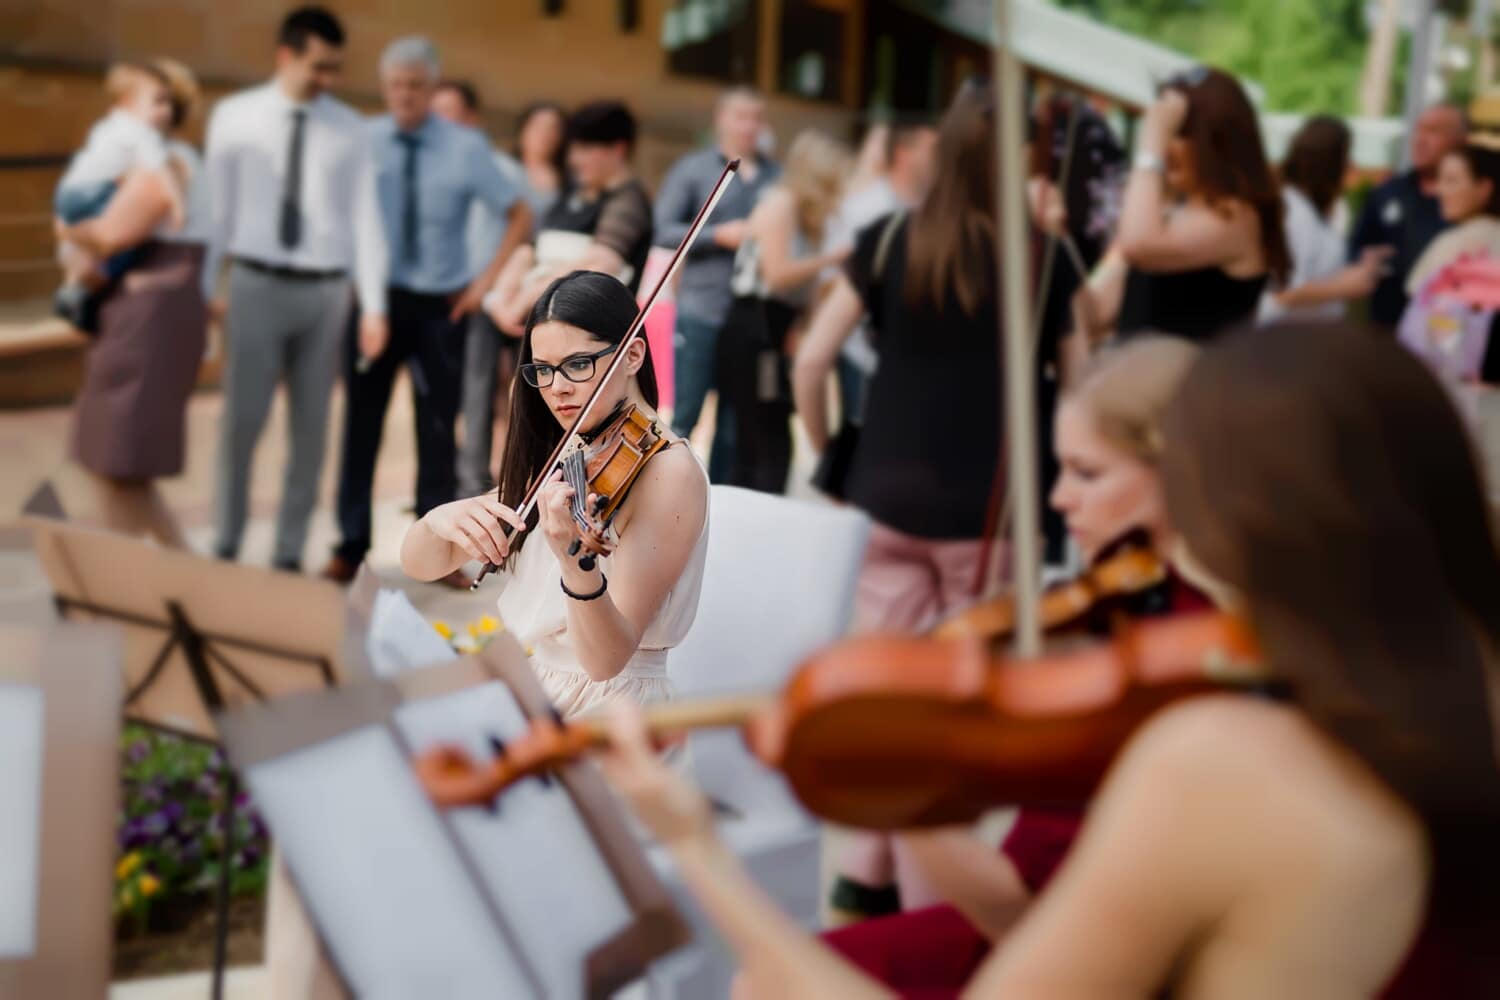 orchestra, festival, street, musician, violin, music, concert, instrument, people, performance